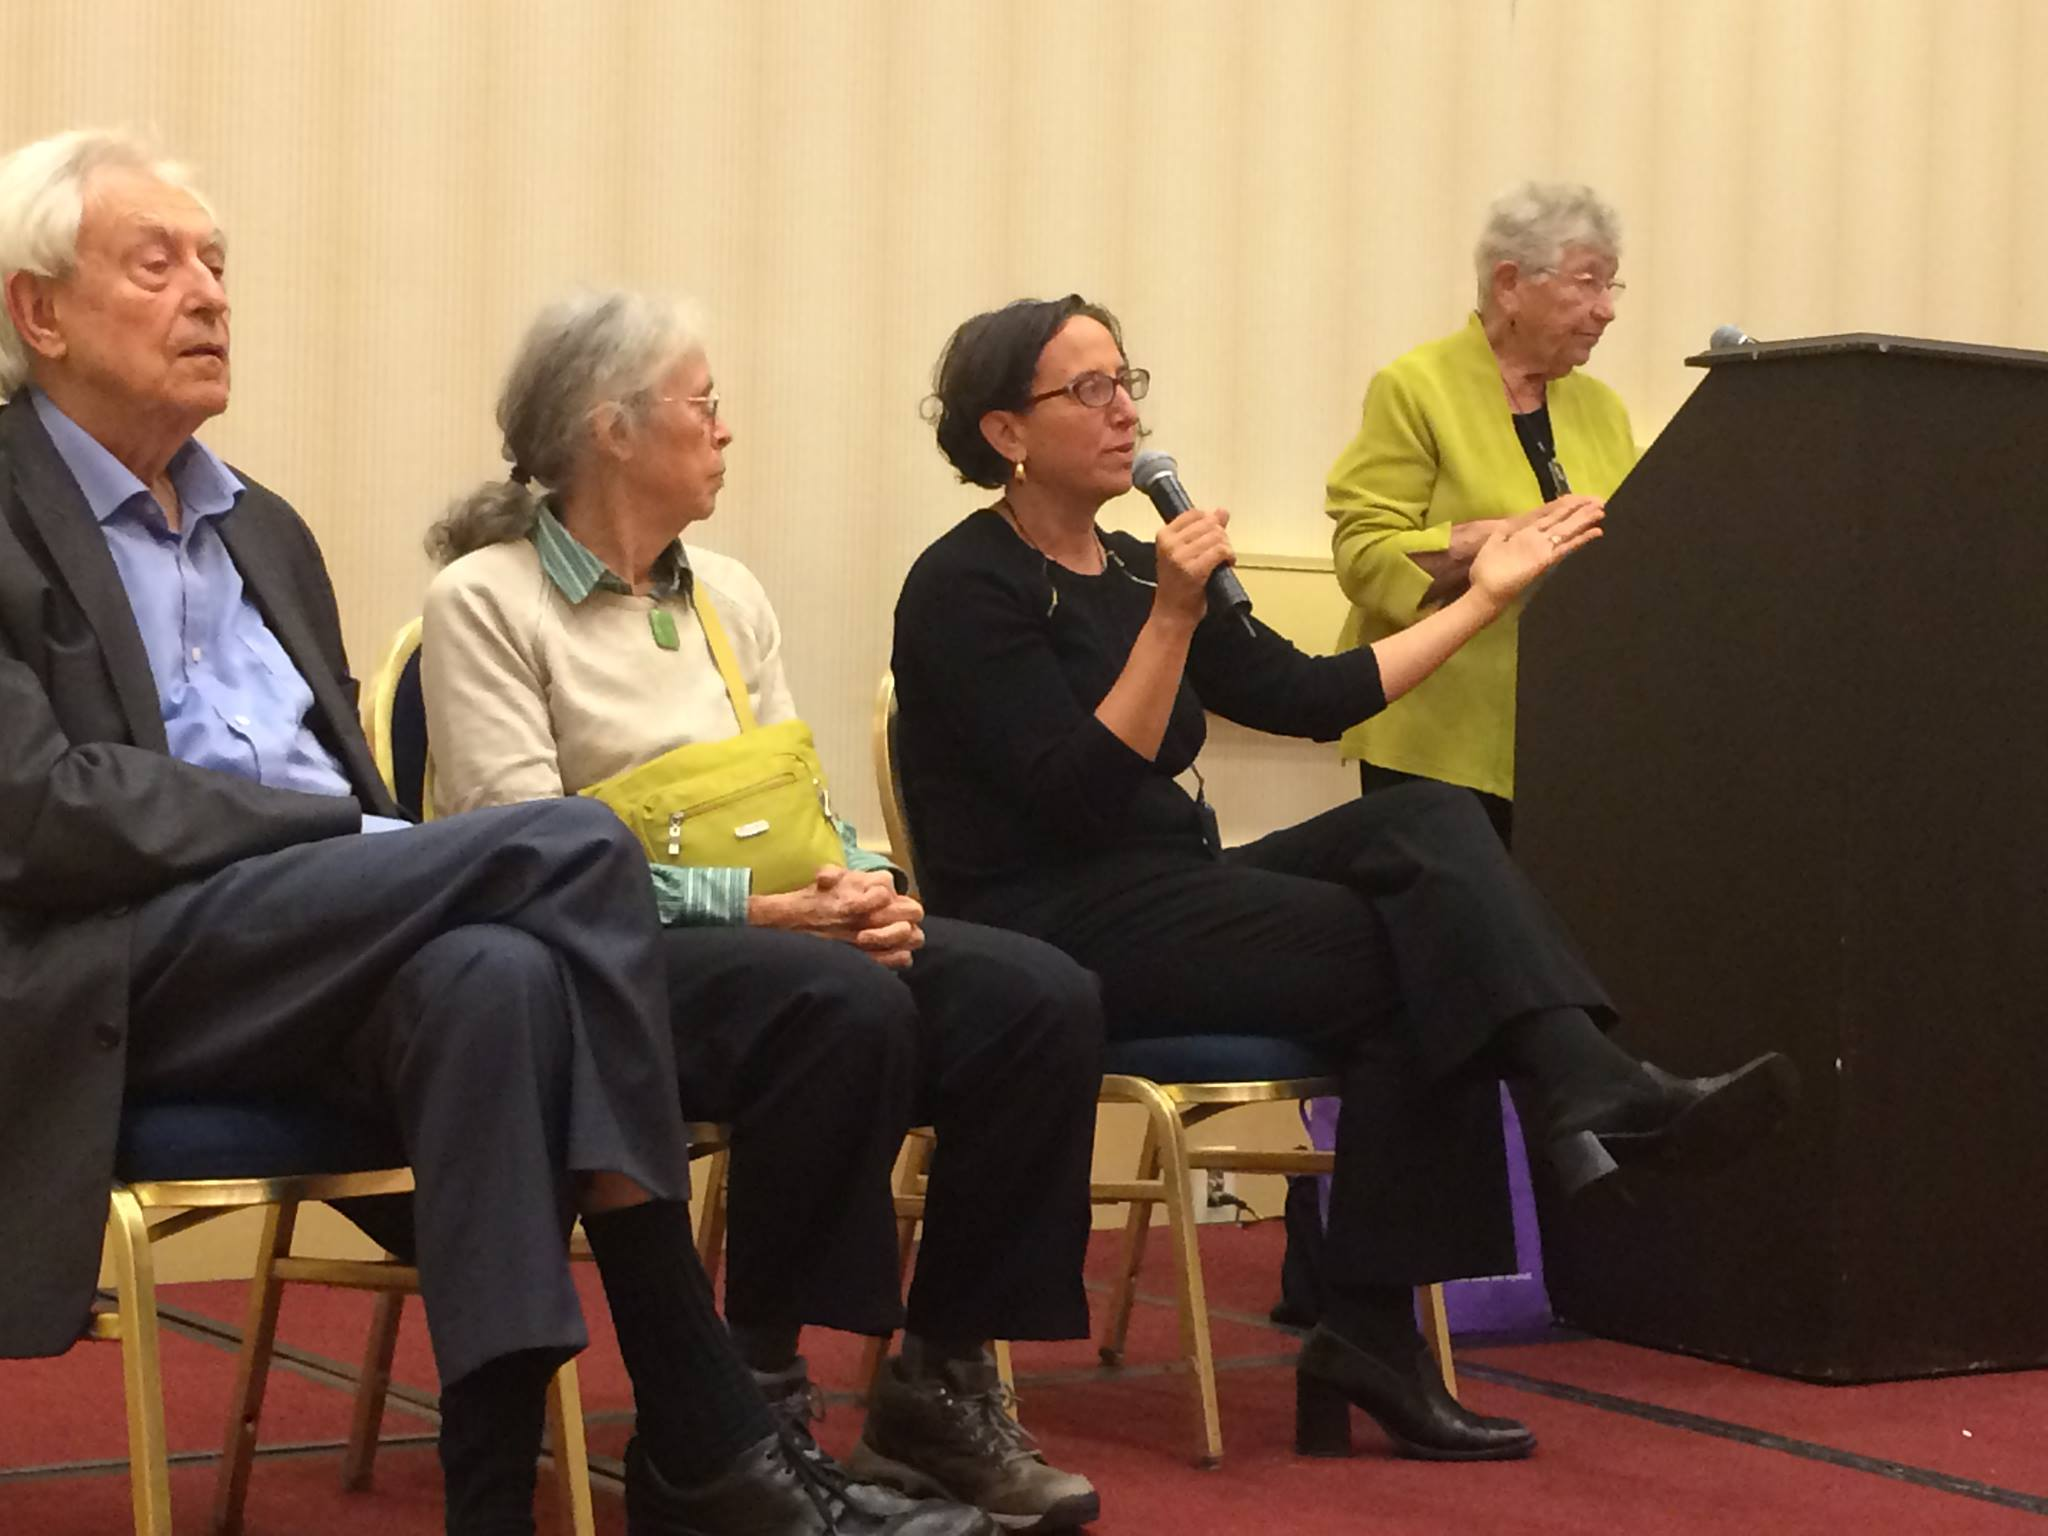 Michel Odent, Ina May Gaskin, and Jennifer Margulis speaking at BirthWorks International